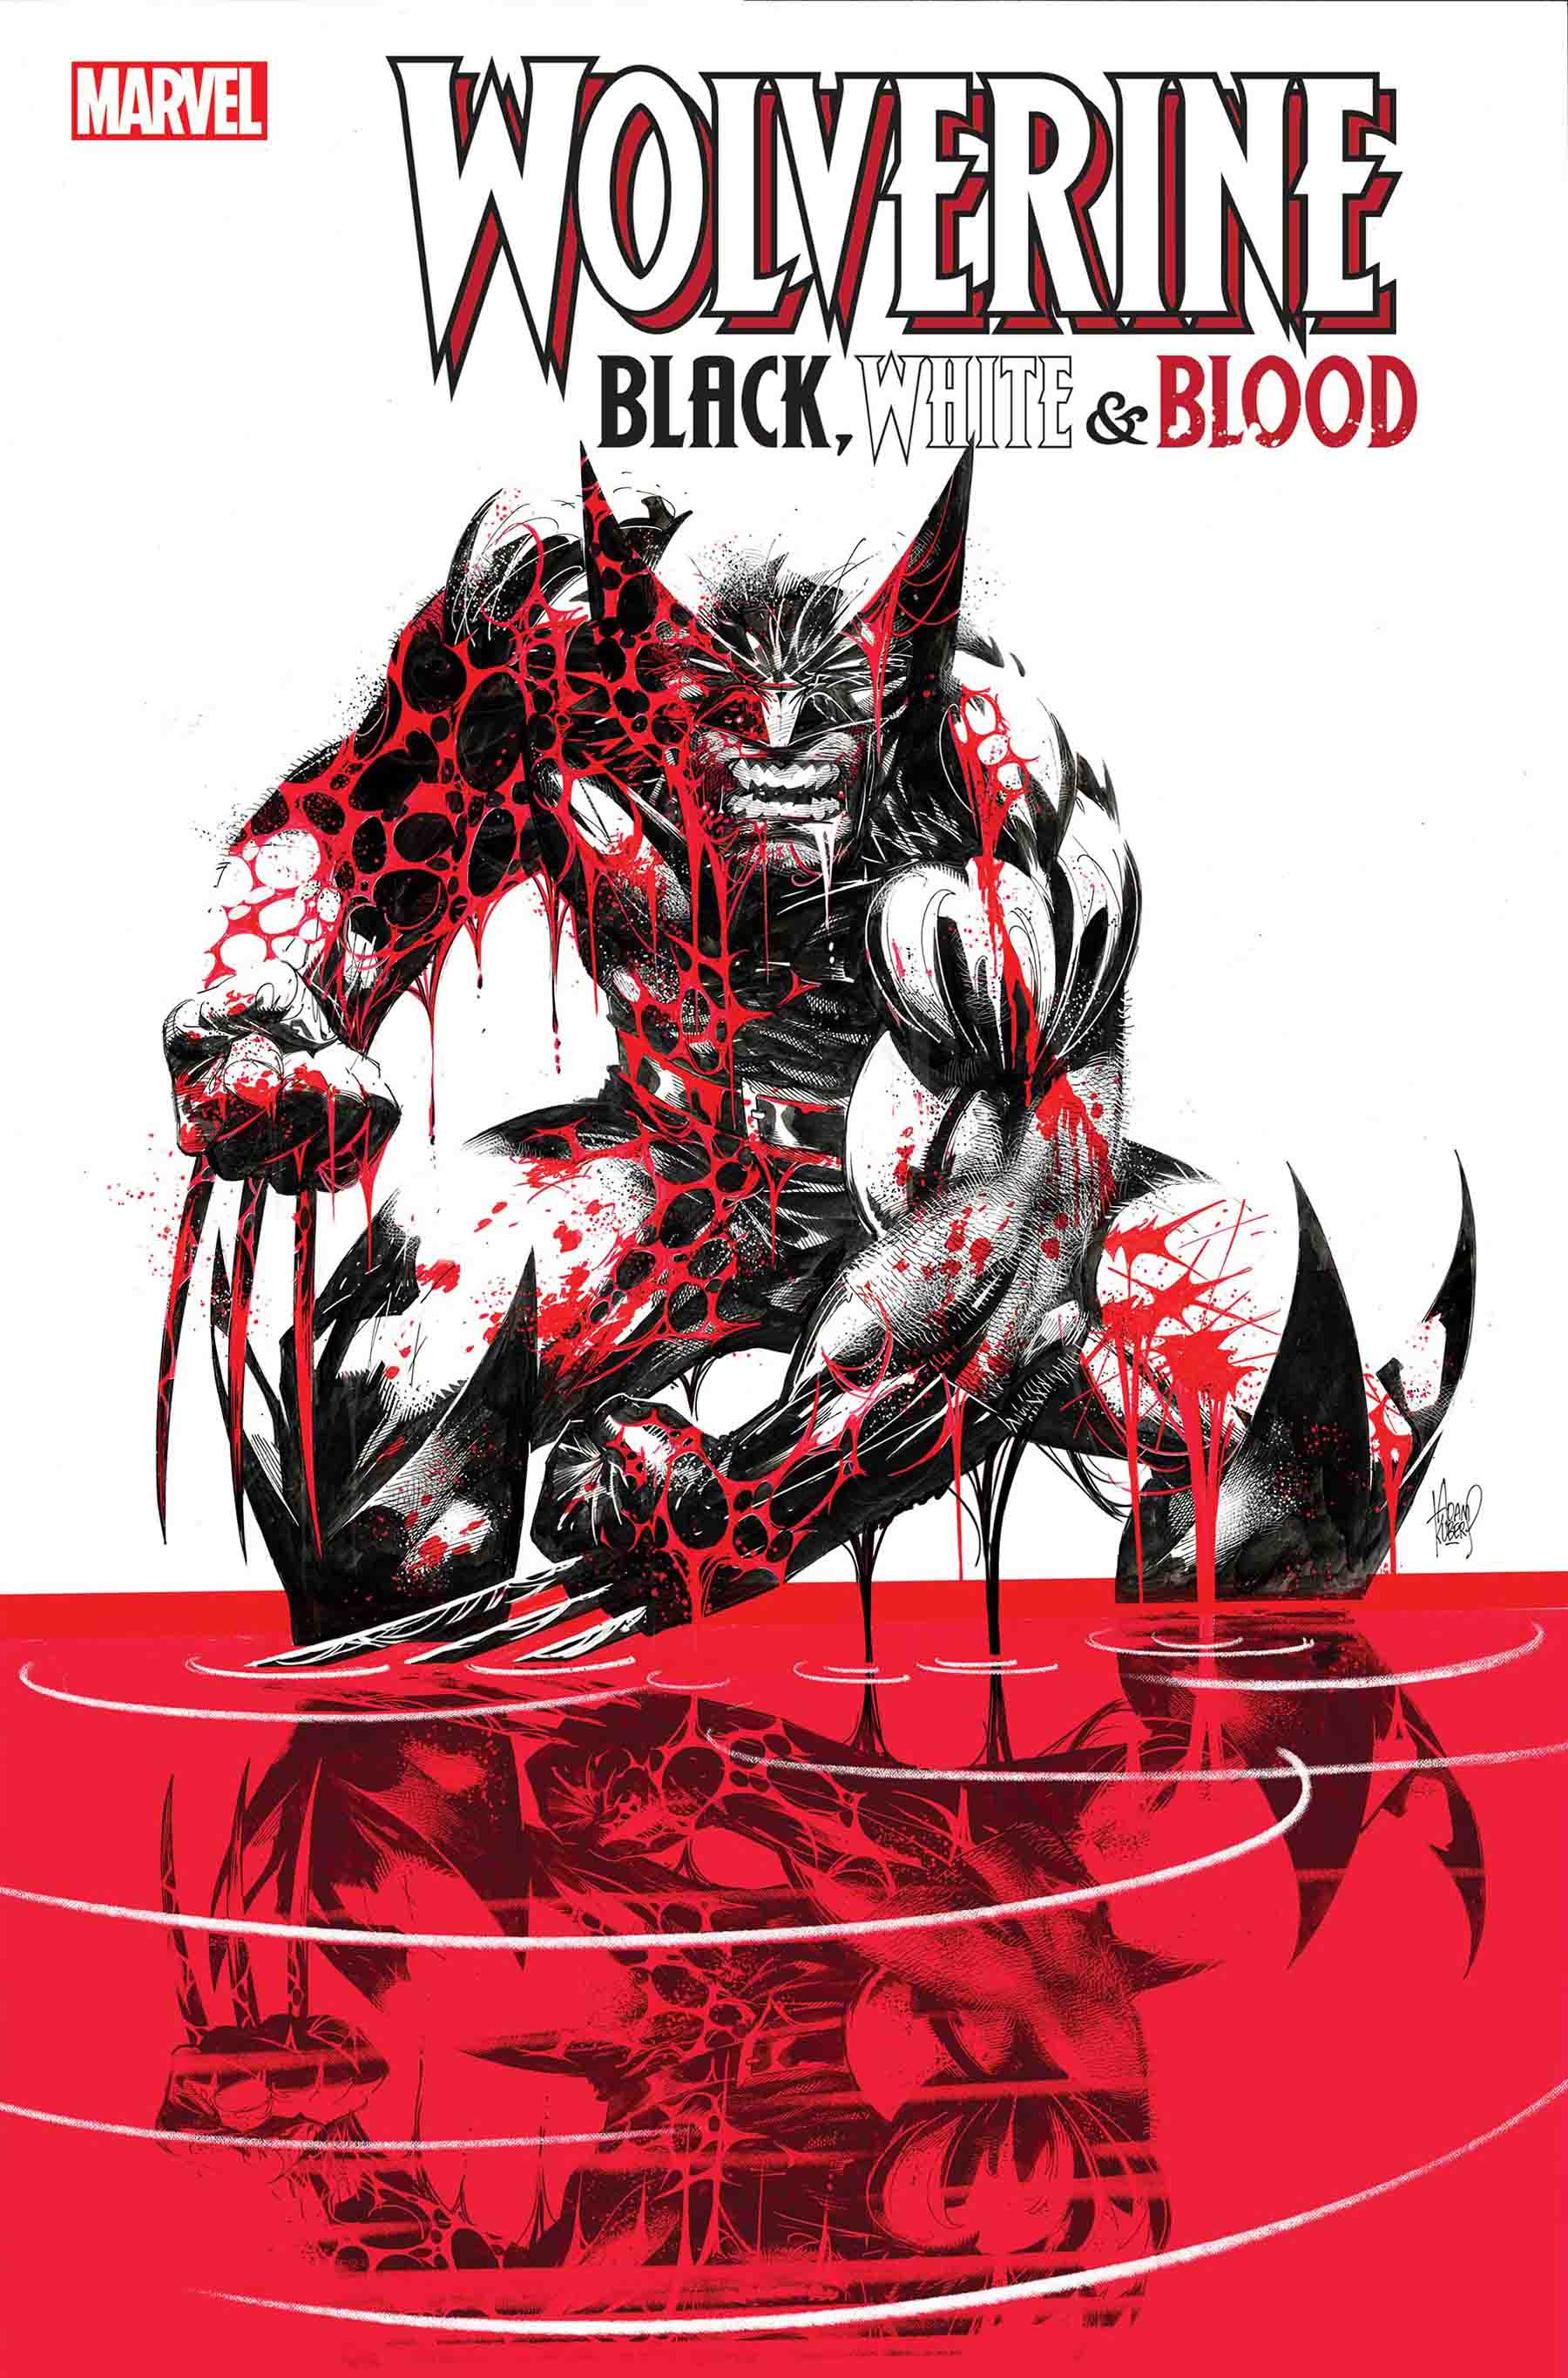 Wolverine: Black, White & Blood (2020) #1